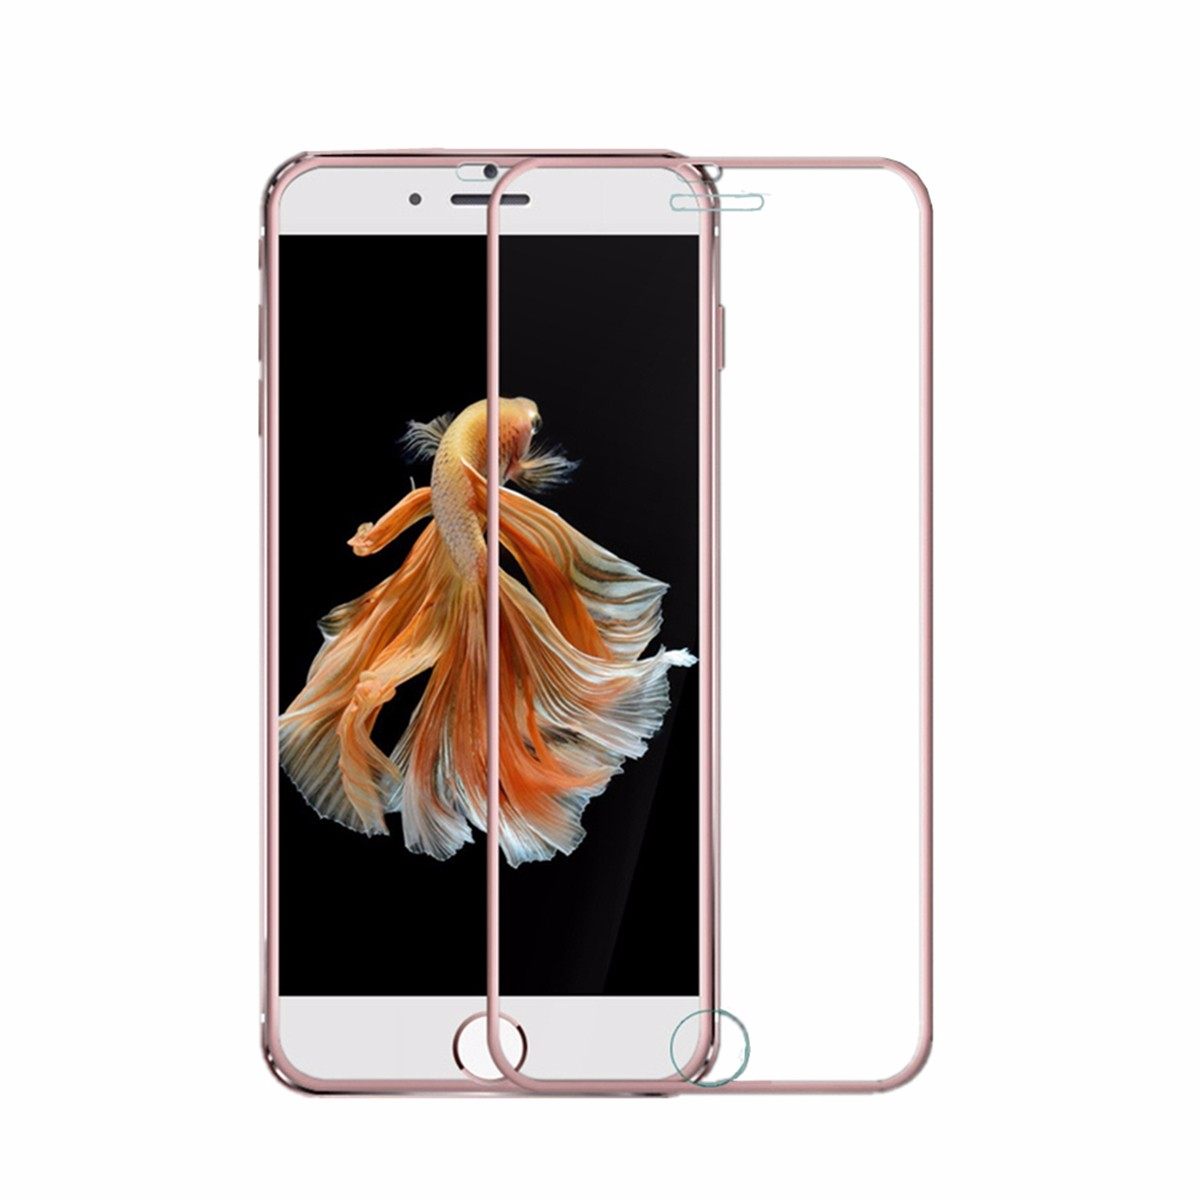 Ultra Thin 0.3mm 3D Curve Edge 9H Tempered Glass Screen Protector Cover For iPhone 7/ 7 Plus